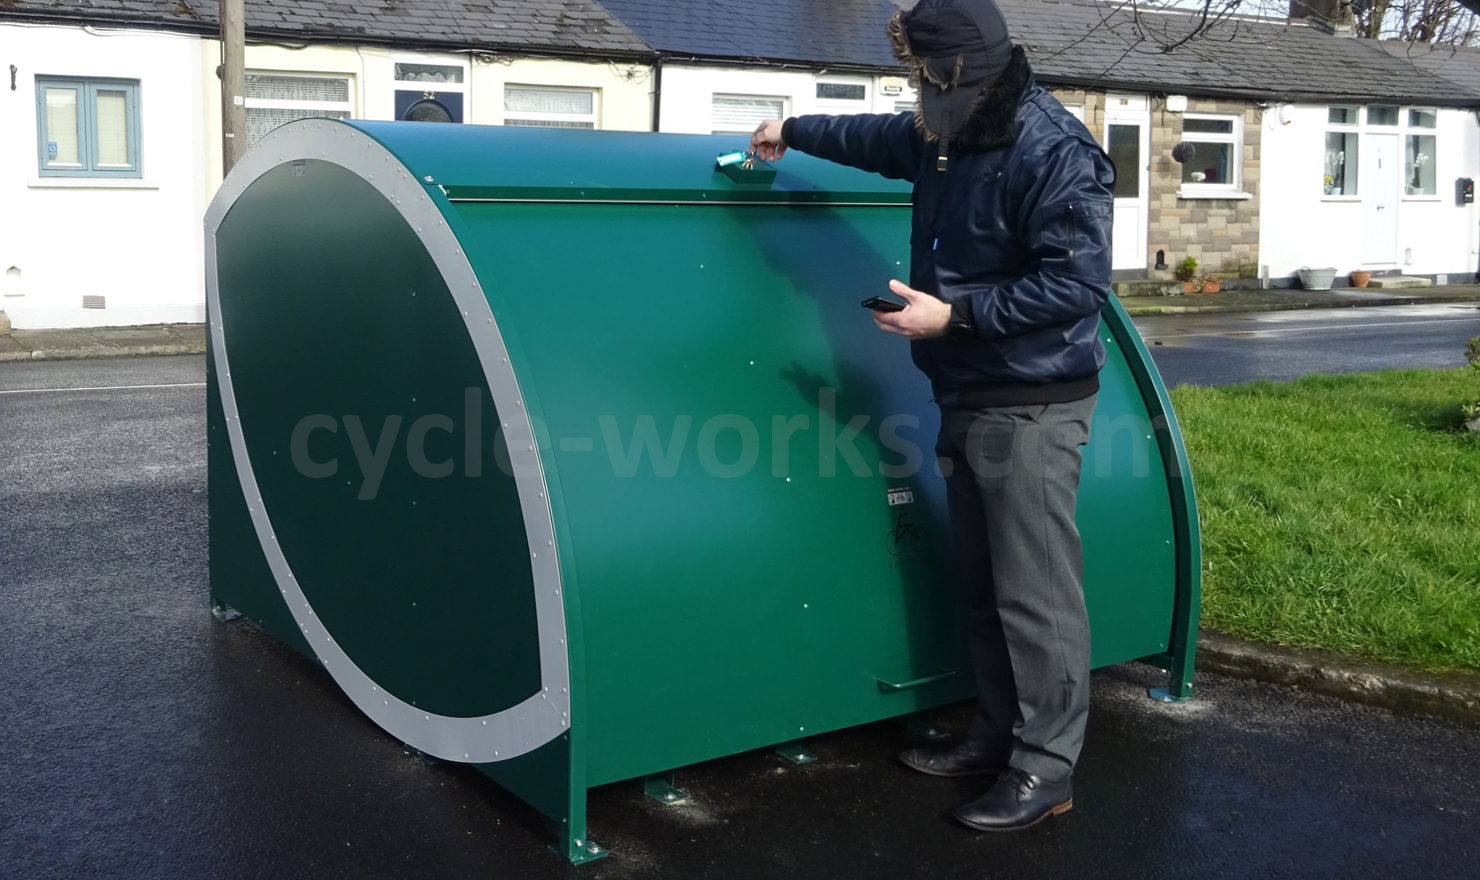 Cycle-Works Velo-Store Cycle Locker Kirwan Cottages Dublin 1